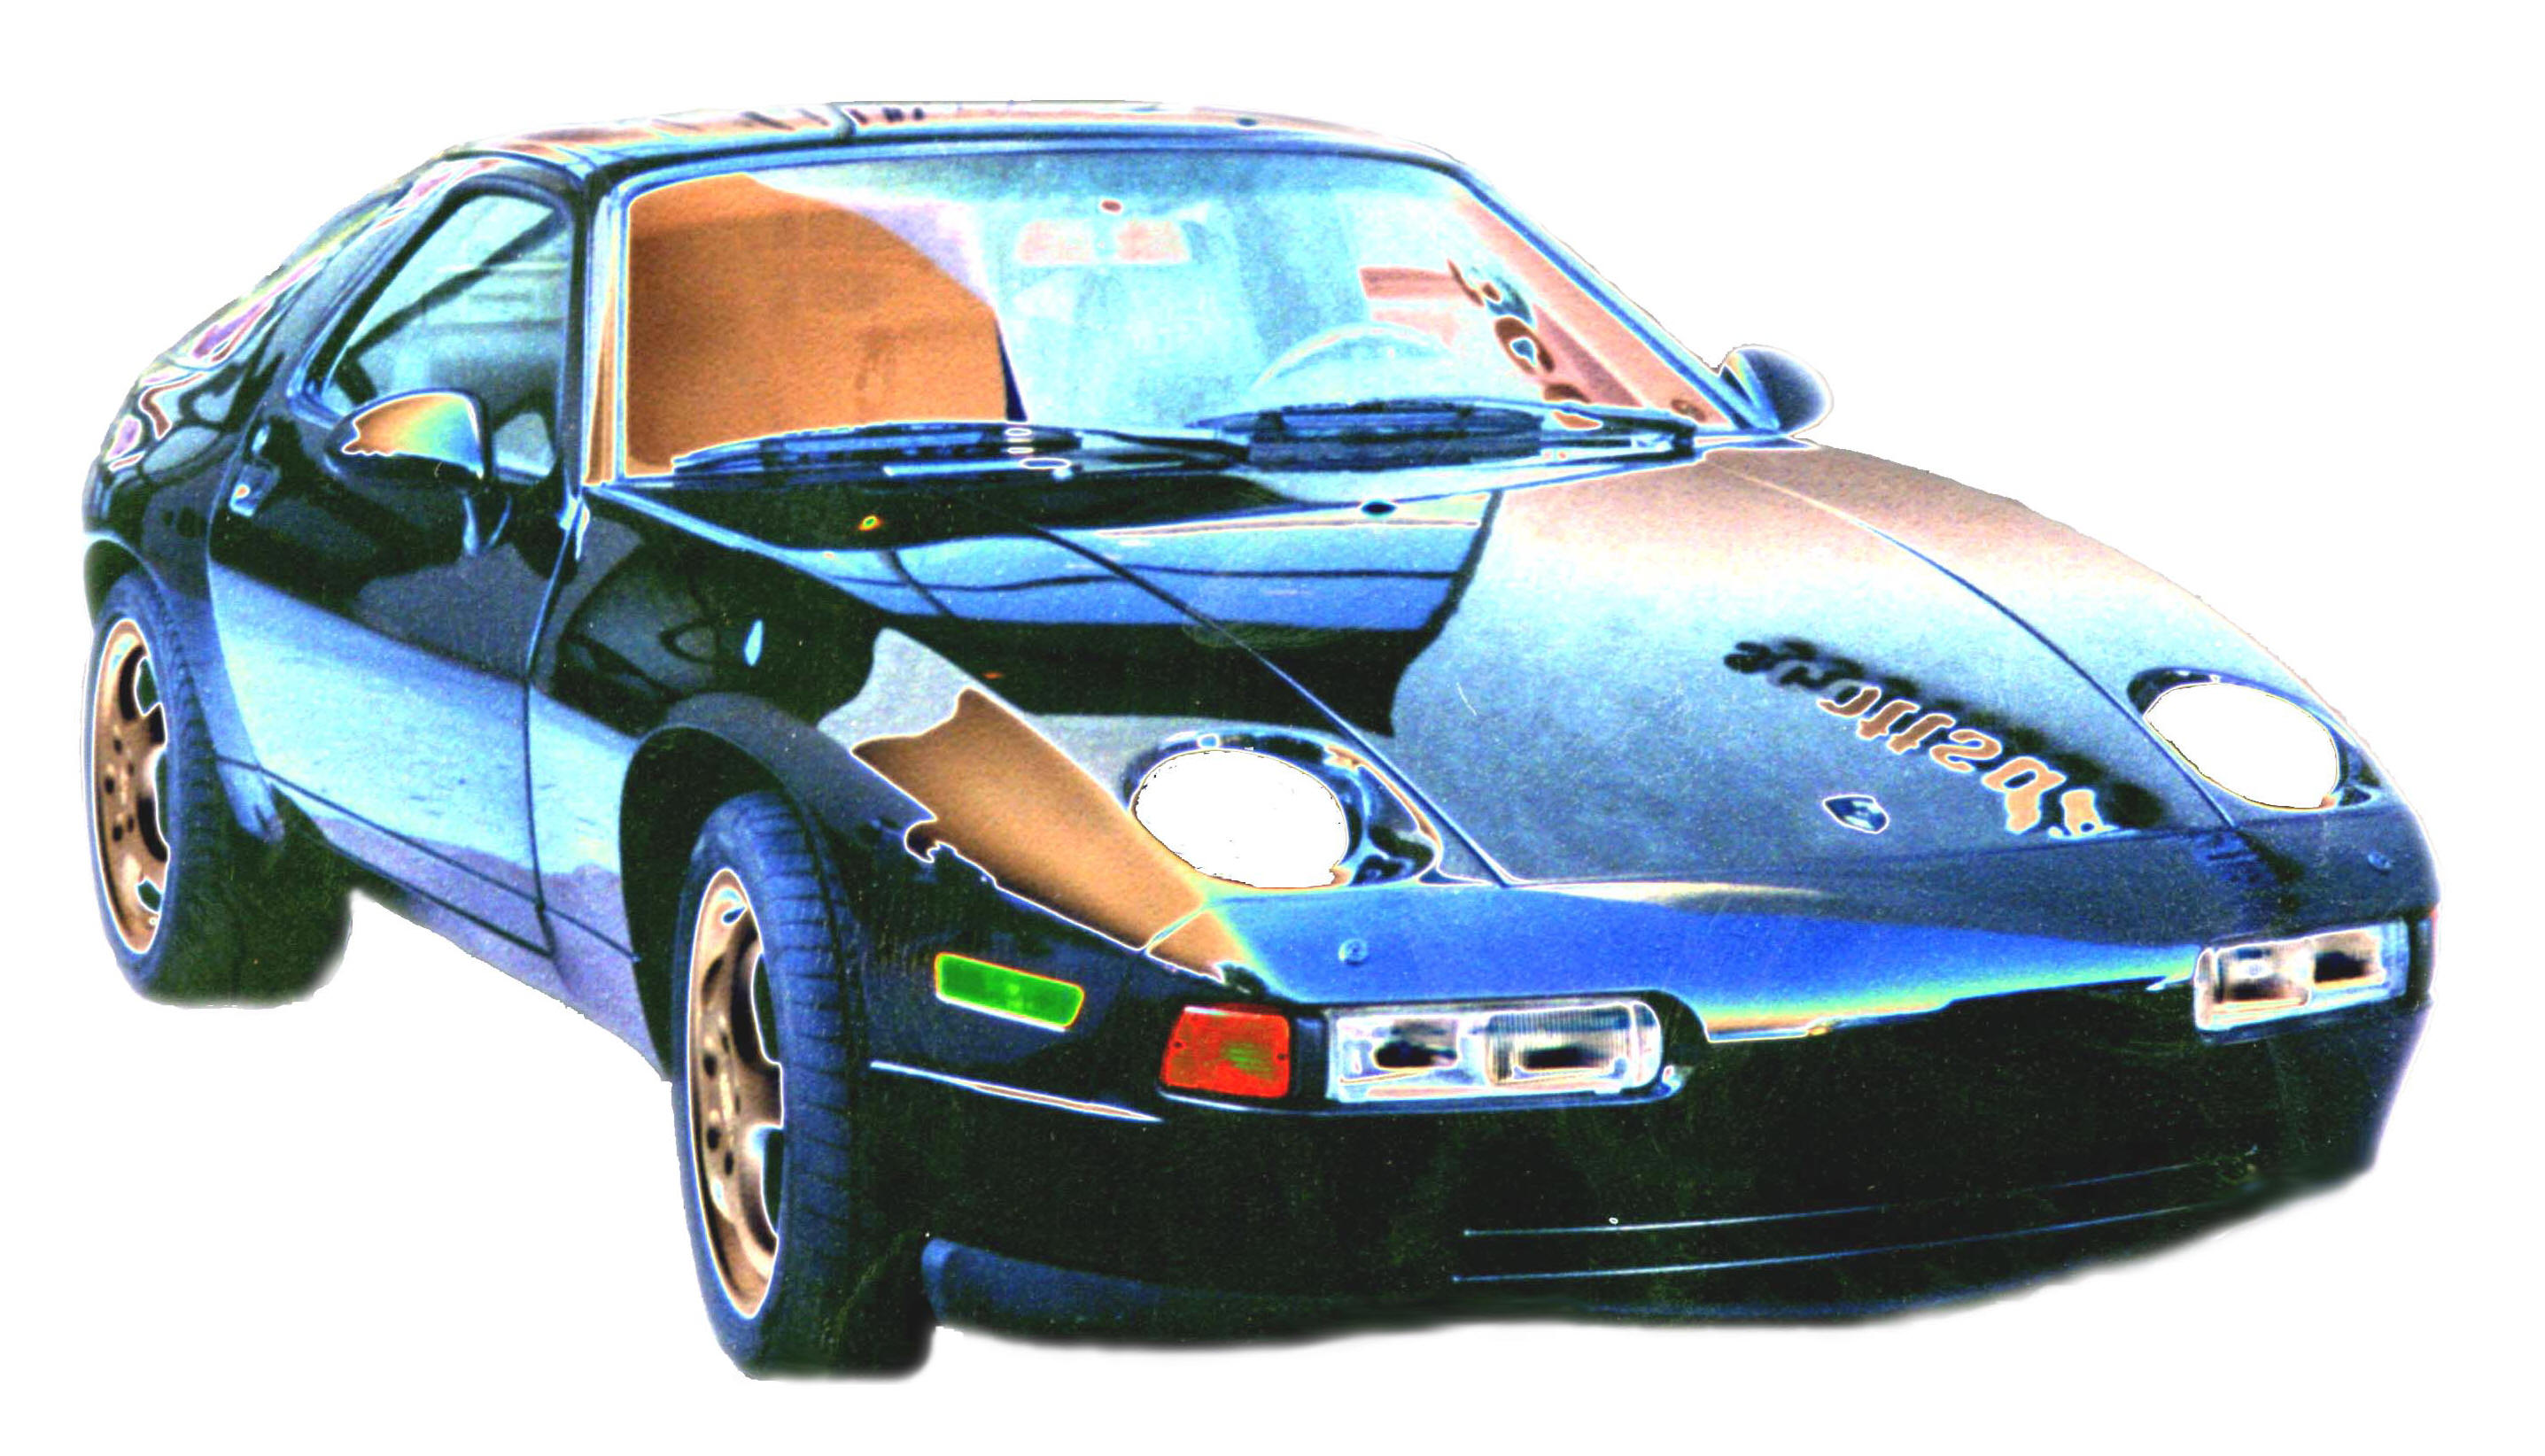 Alan 928 GTS 8h wiring diag primer 1980 porsche 928 wiring diagram at virtualis.co